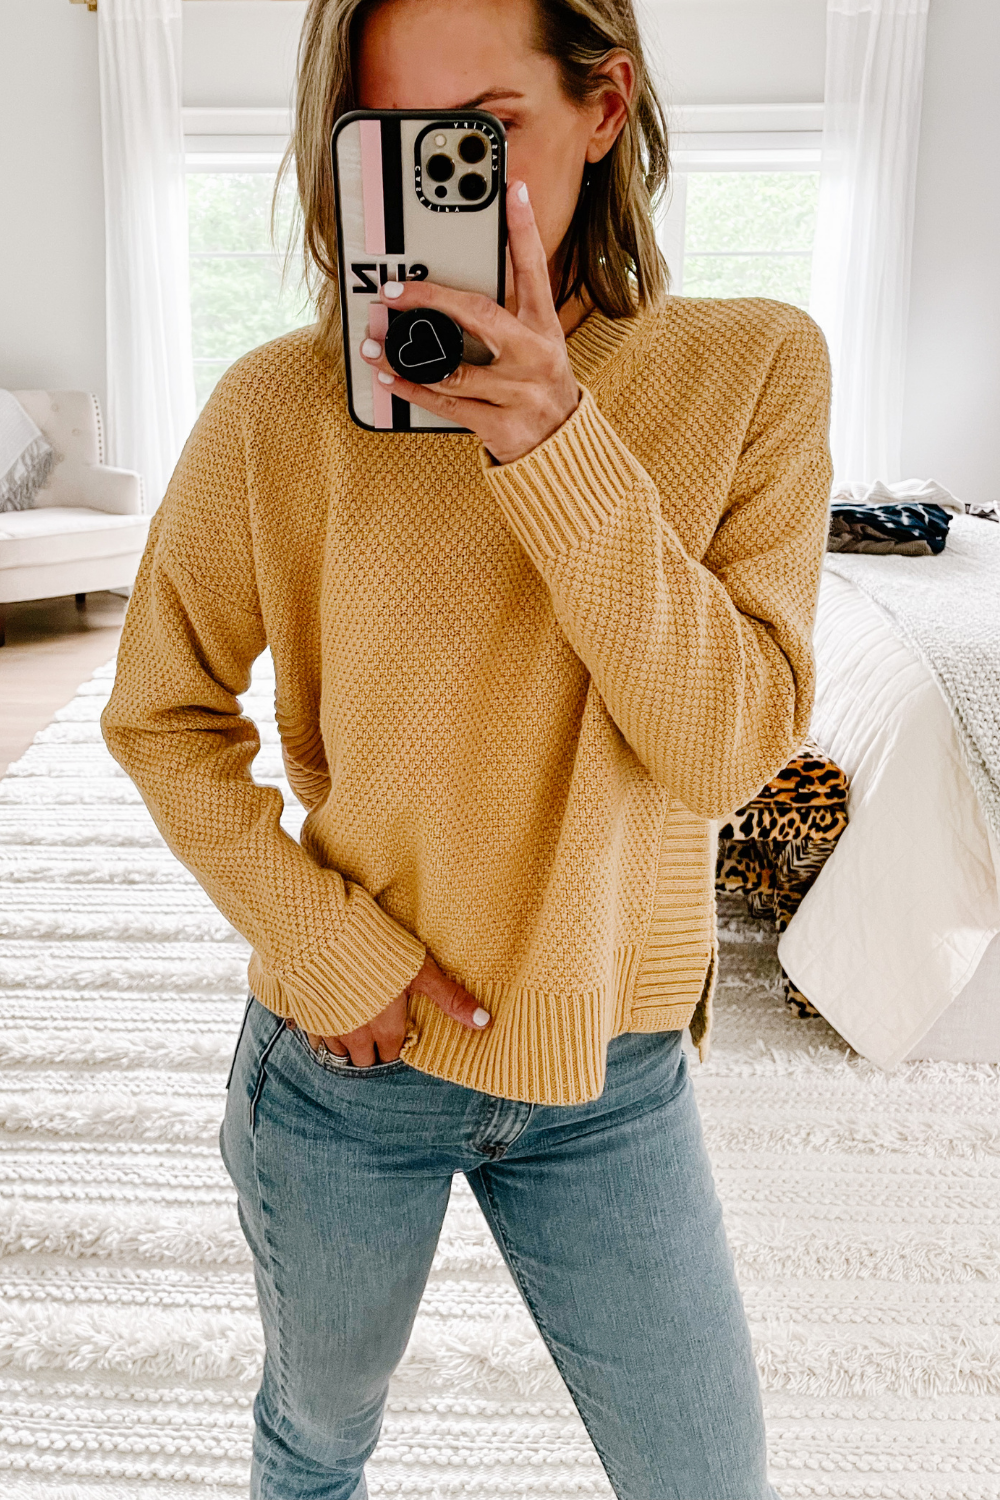 Closet staples: Madewell sweater and skini jeans